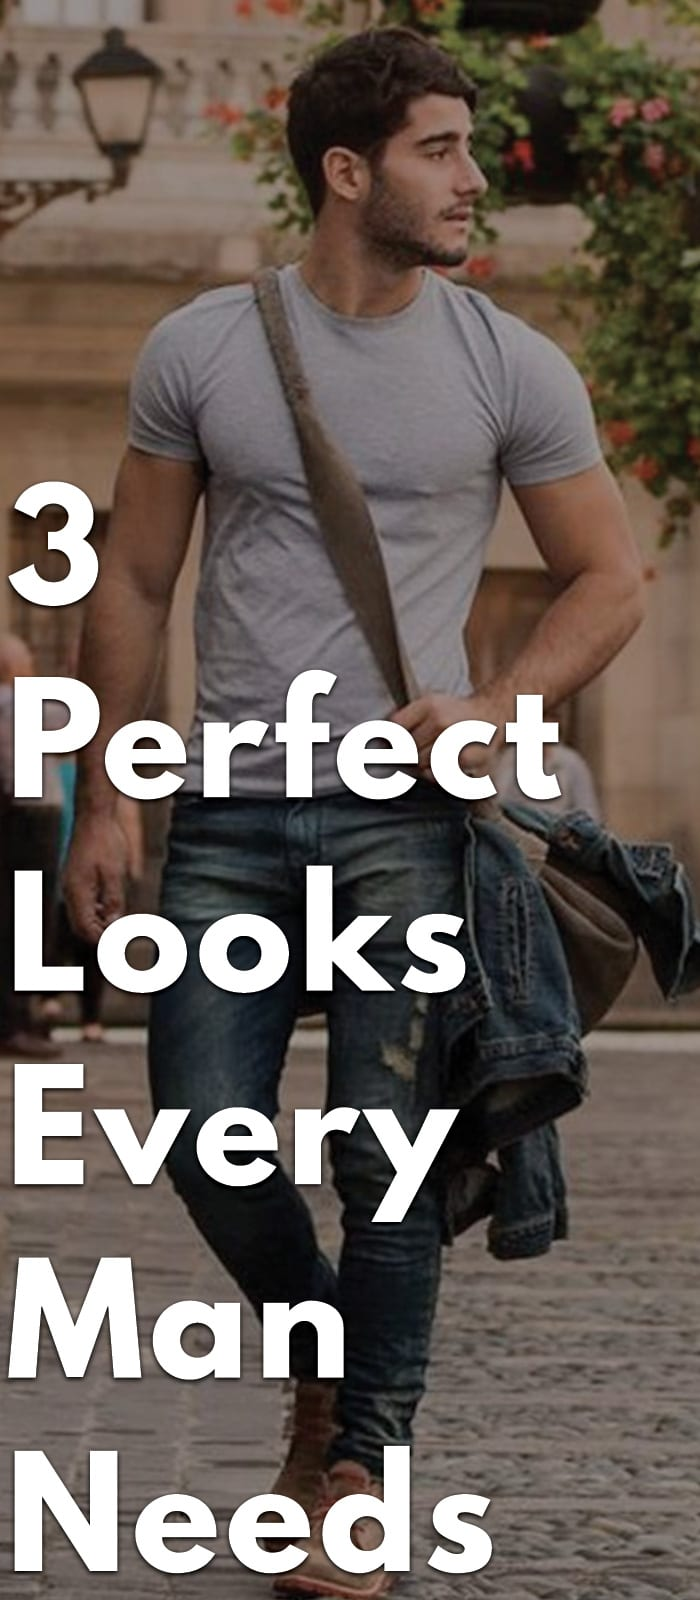 3-Perfect-Looks-Every-Man-Needs